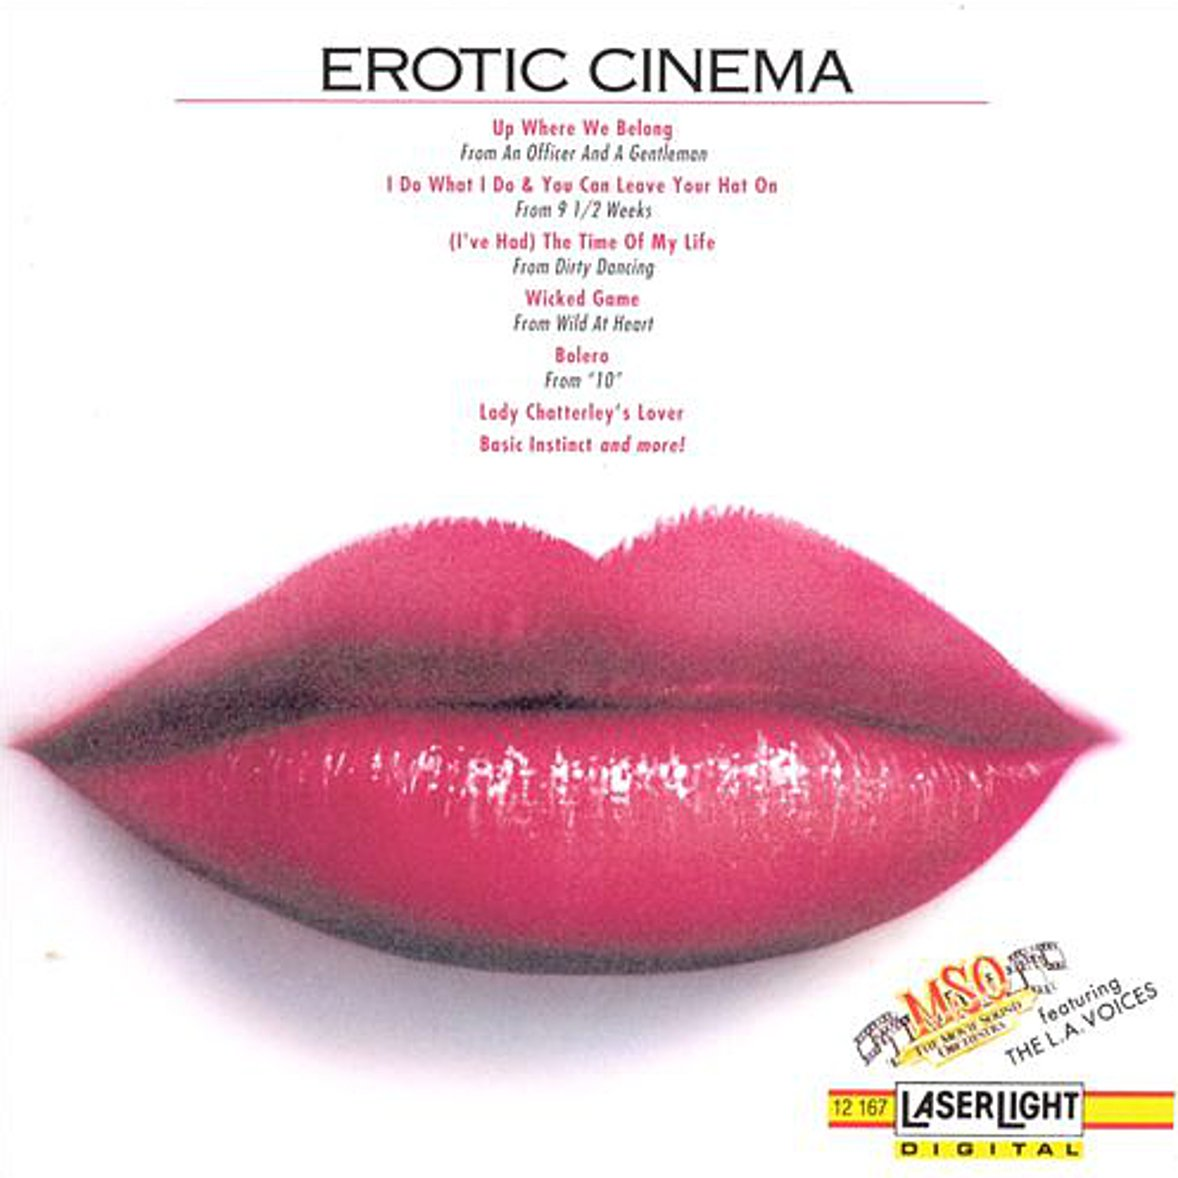 erotic cinema